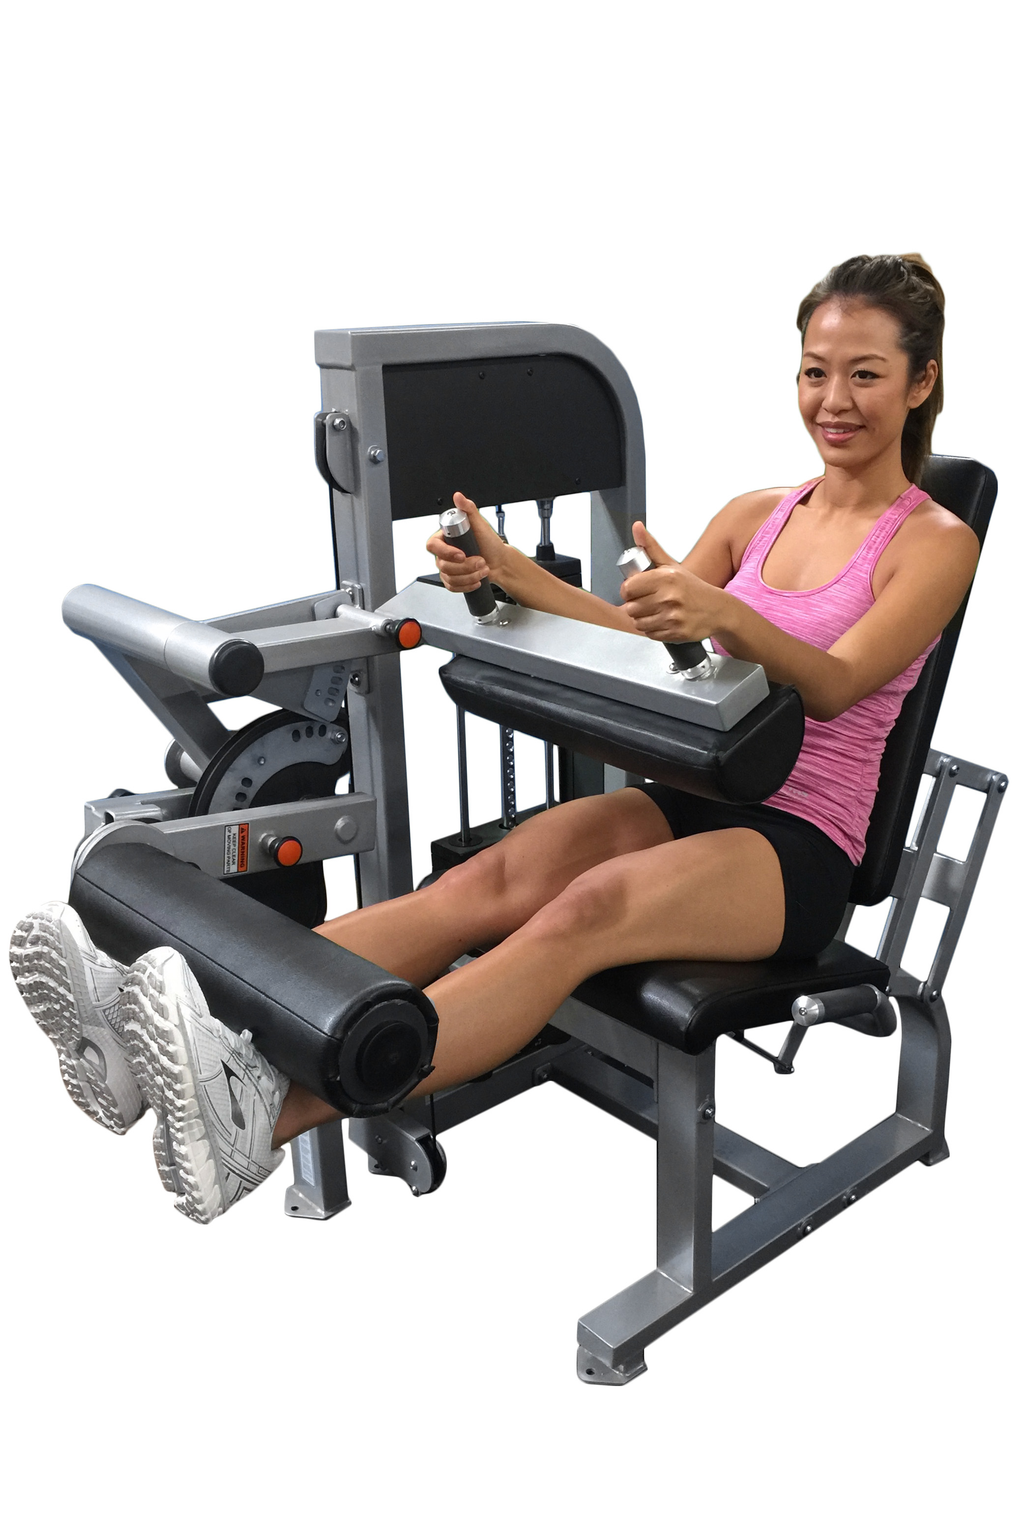 Leg Extension/Seated Leg Curl Combo - MD DUAL FUNCTION LINE